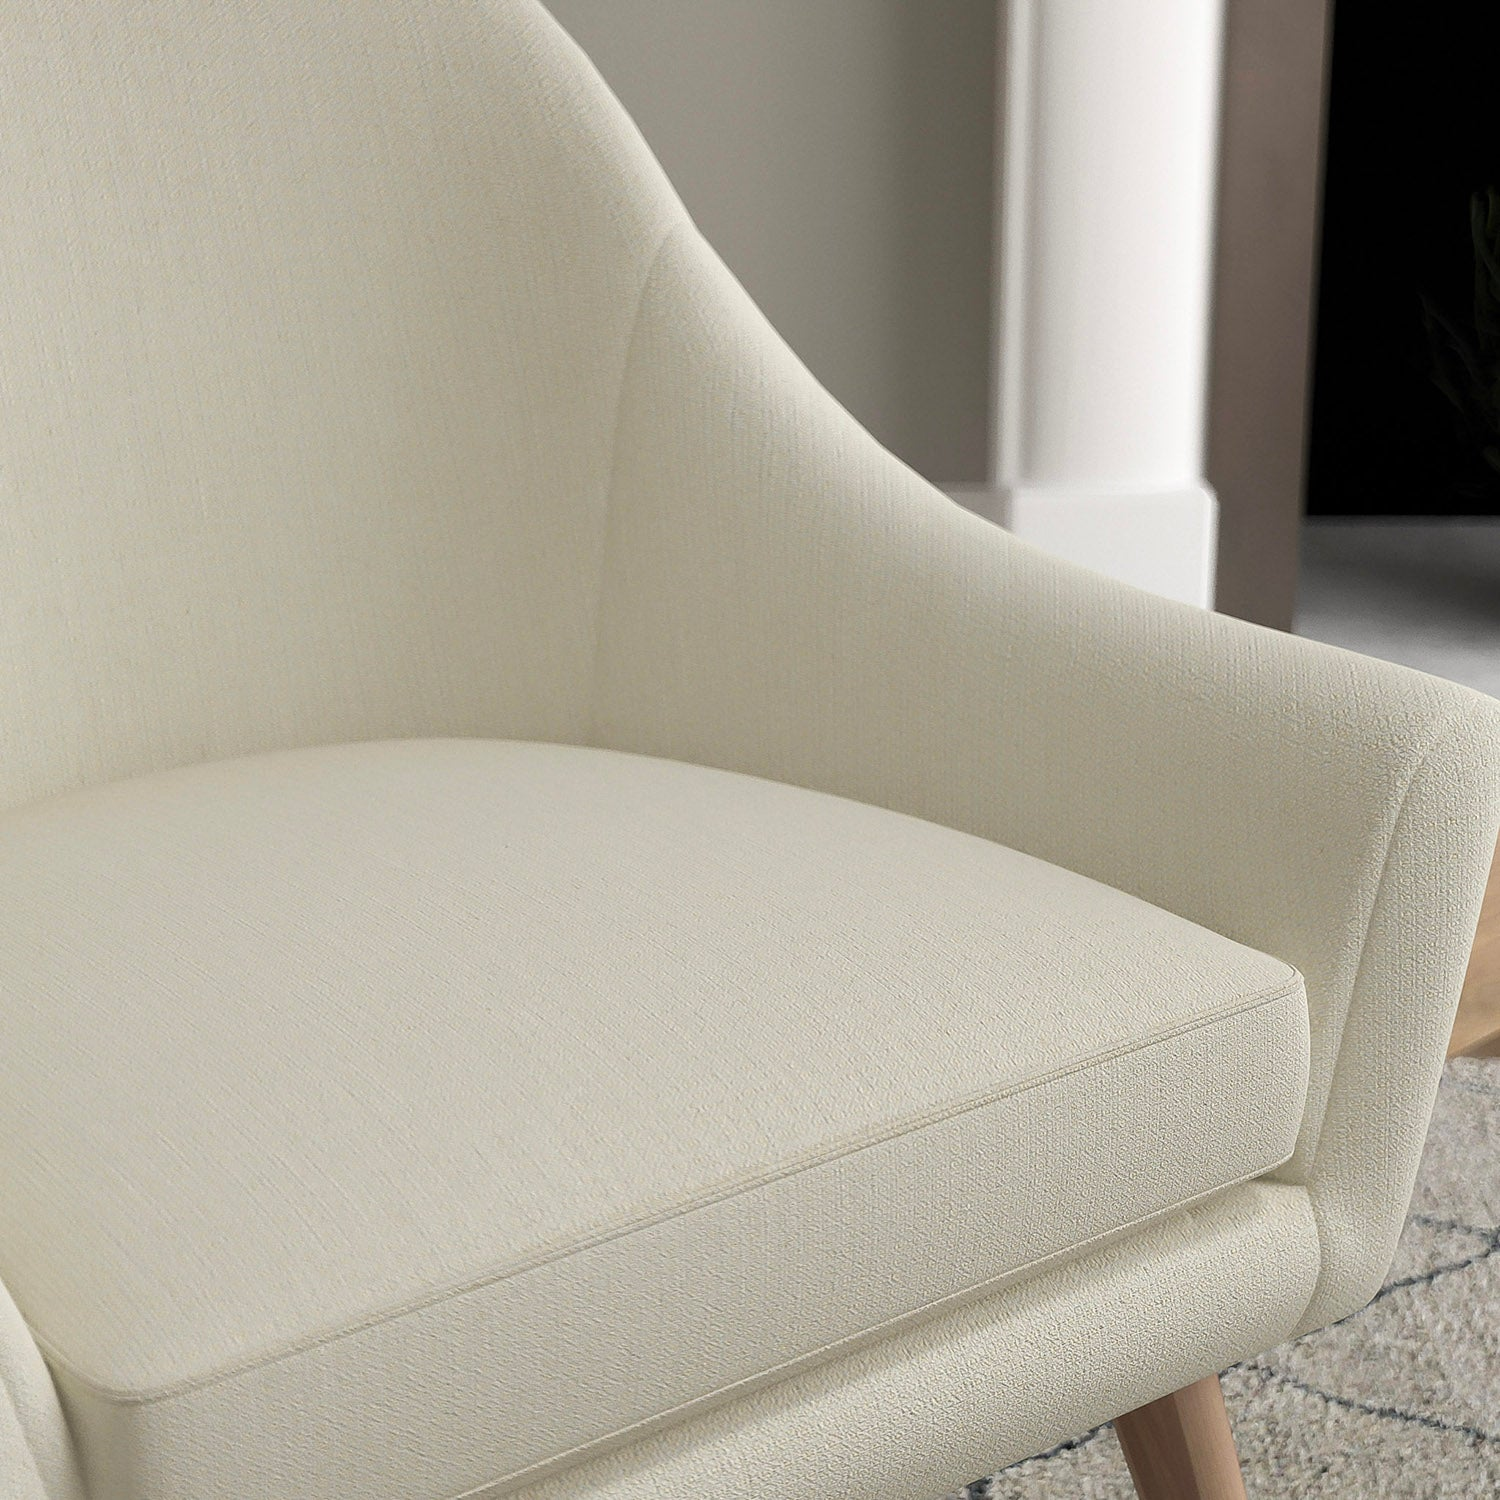 Chair with a light grey and neutral upholstery fabric with a small diamond weave fabric